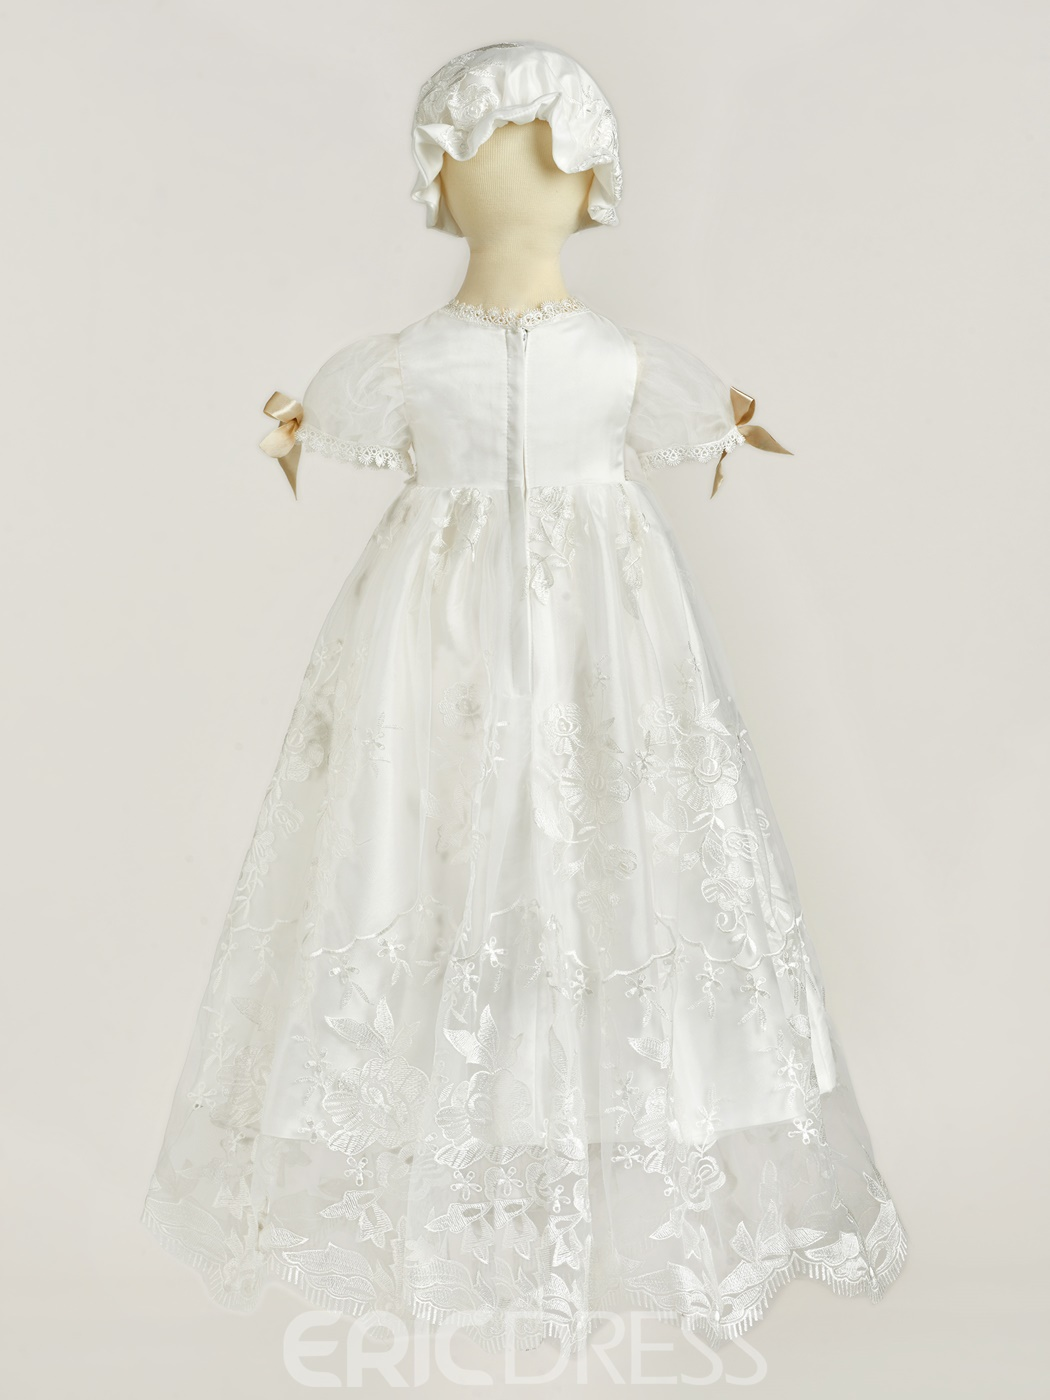 Ericdress Lace Bowknot Bonnet Baby Girl's Christening Gown with Sleeves